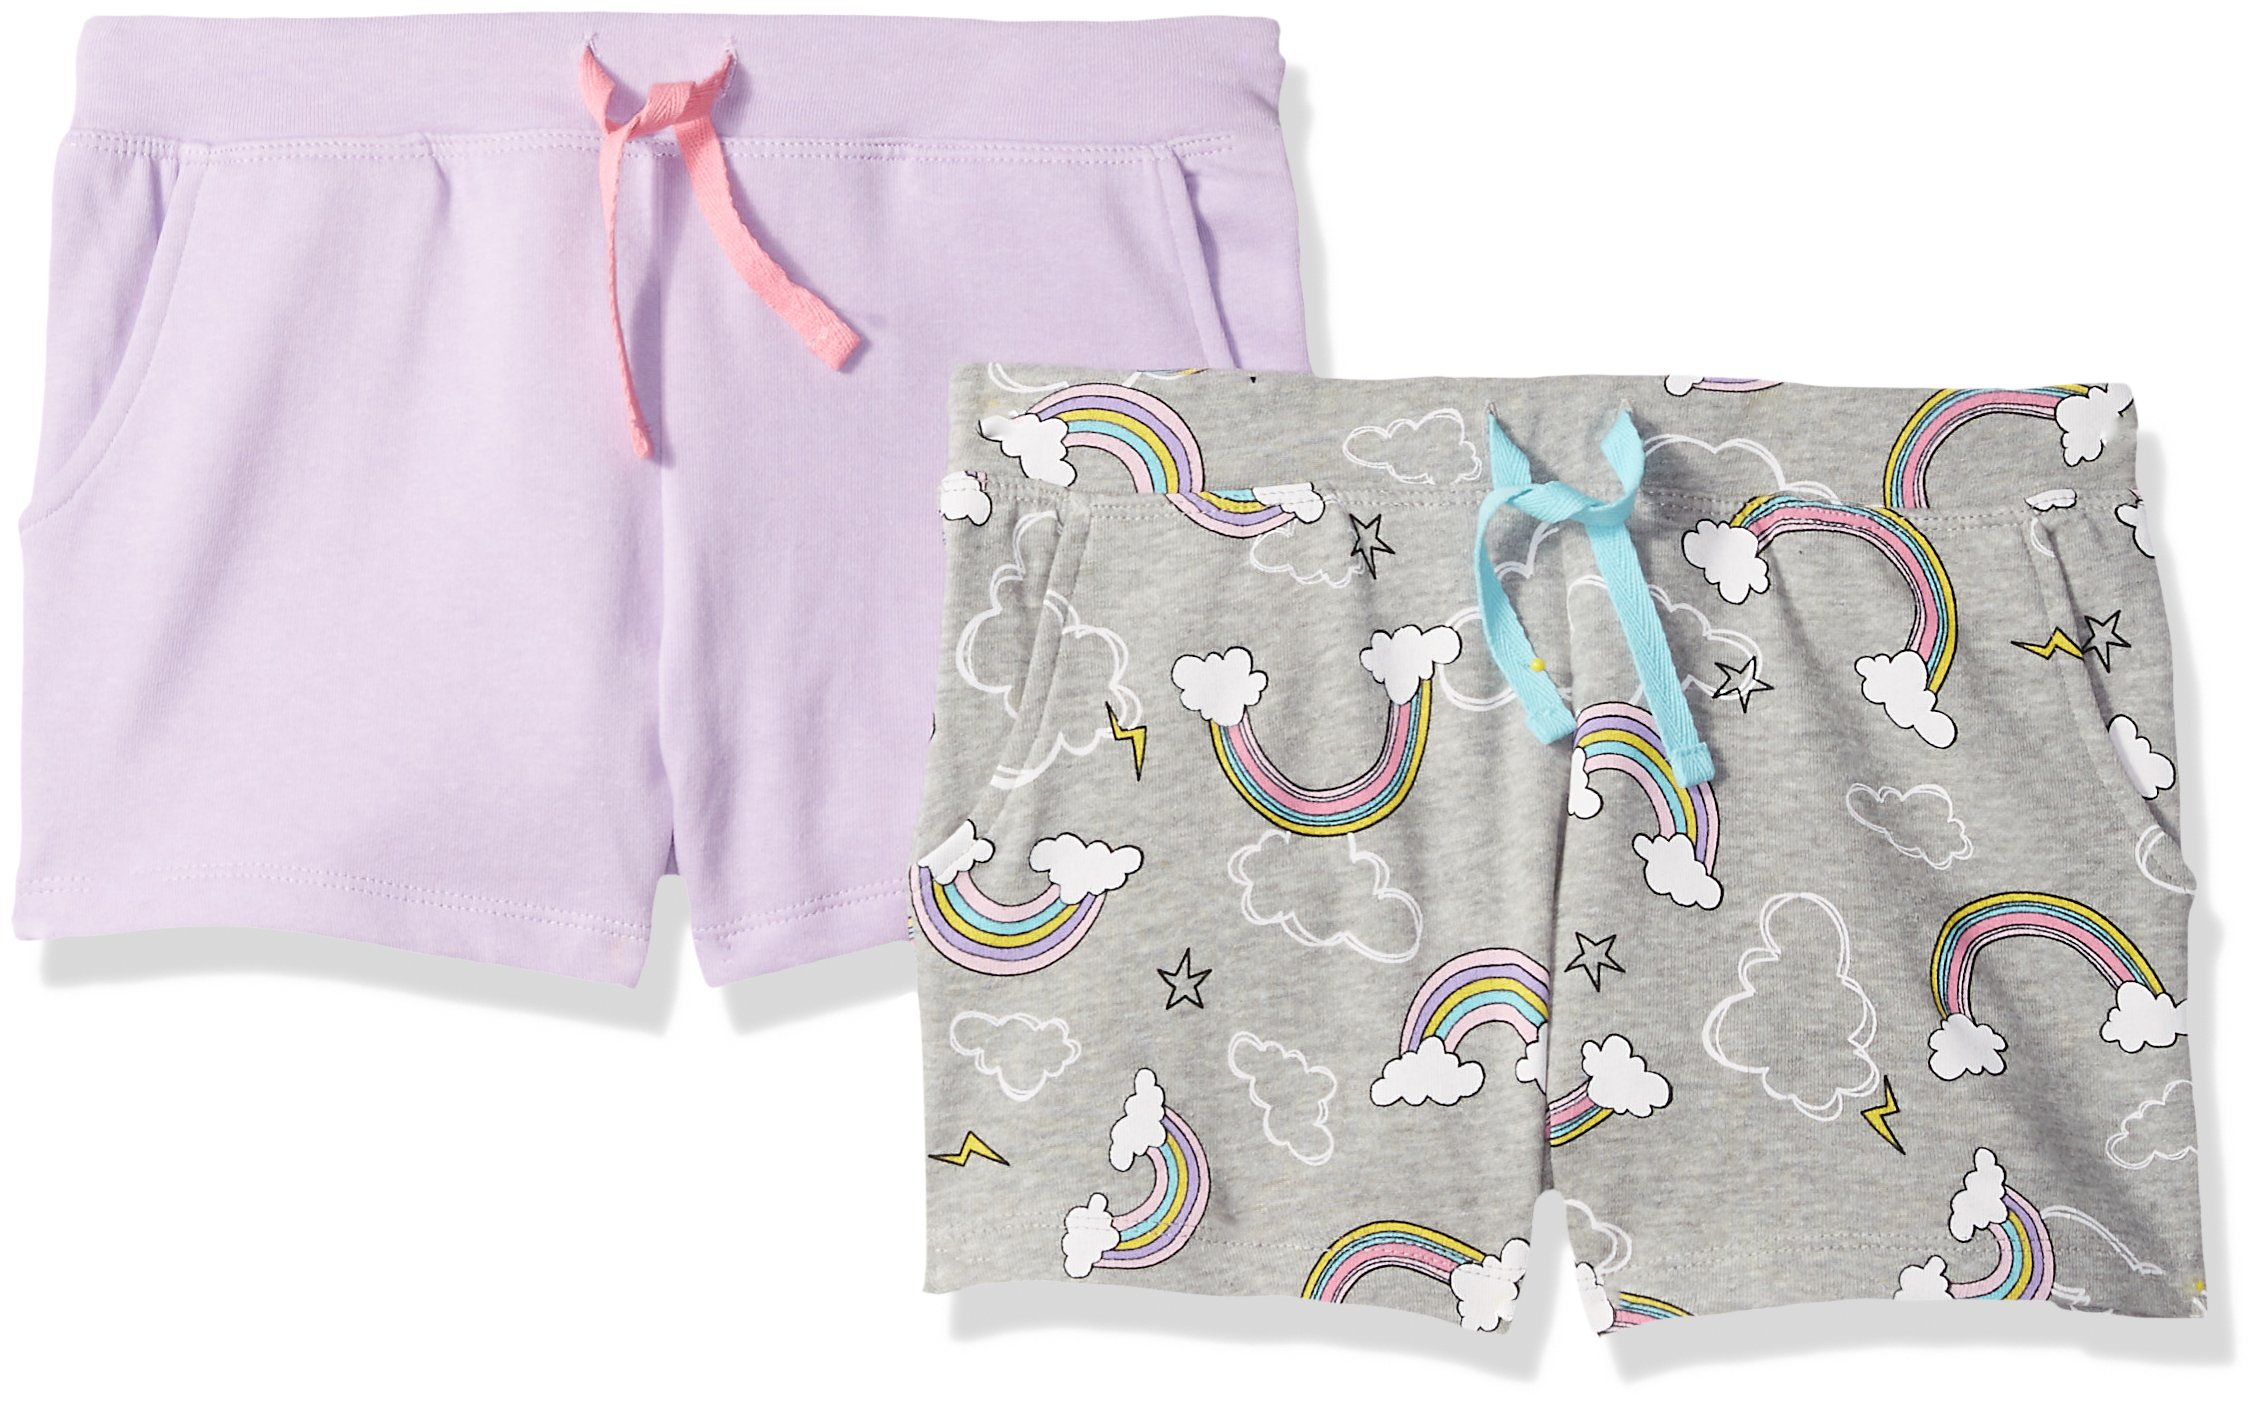 Spotted Zebra Little Girls' 2-Pack French Terry Knit Shorts, Rainbows, Small (6-7)